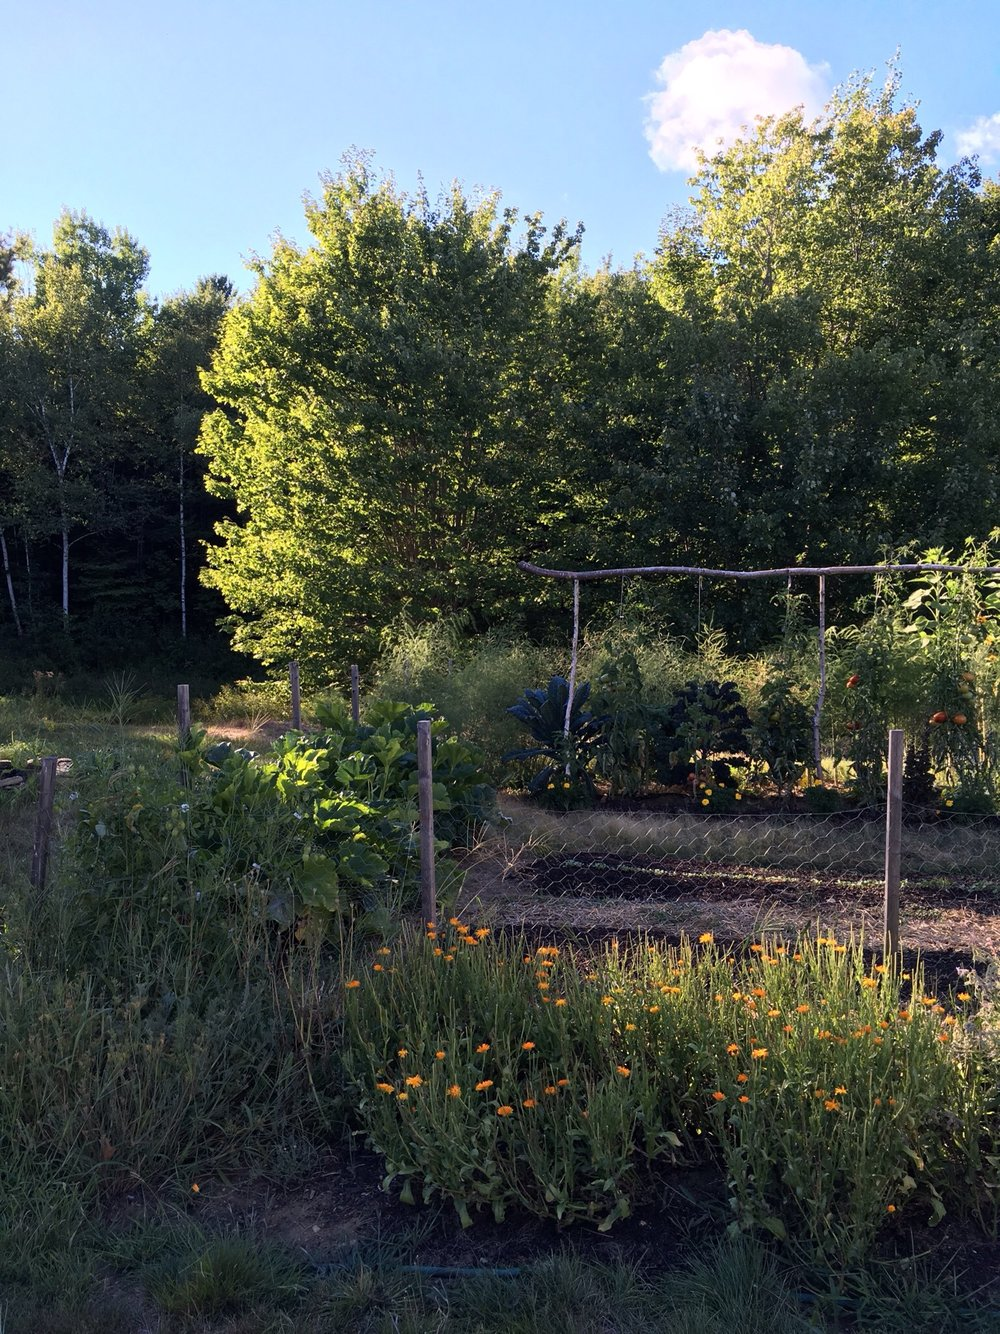 Front to back: more calendula, this year's garlic beds planted to fall lettuce and leafy brassicas, Mike's tomato trellis, kale trees behind, then asparagus and the start of the sunflowers on the far side of the garden.